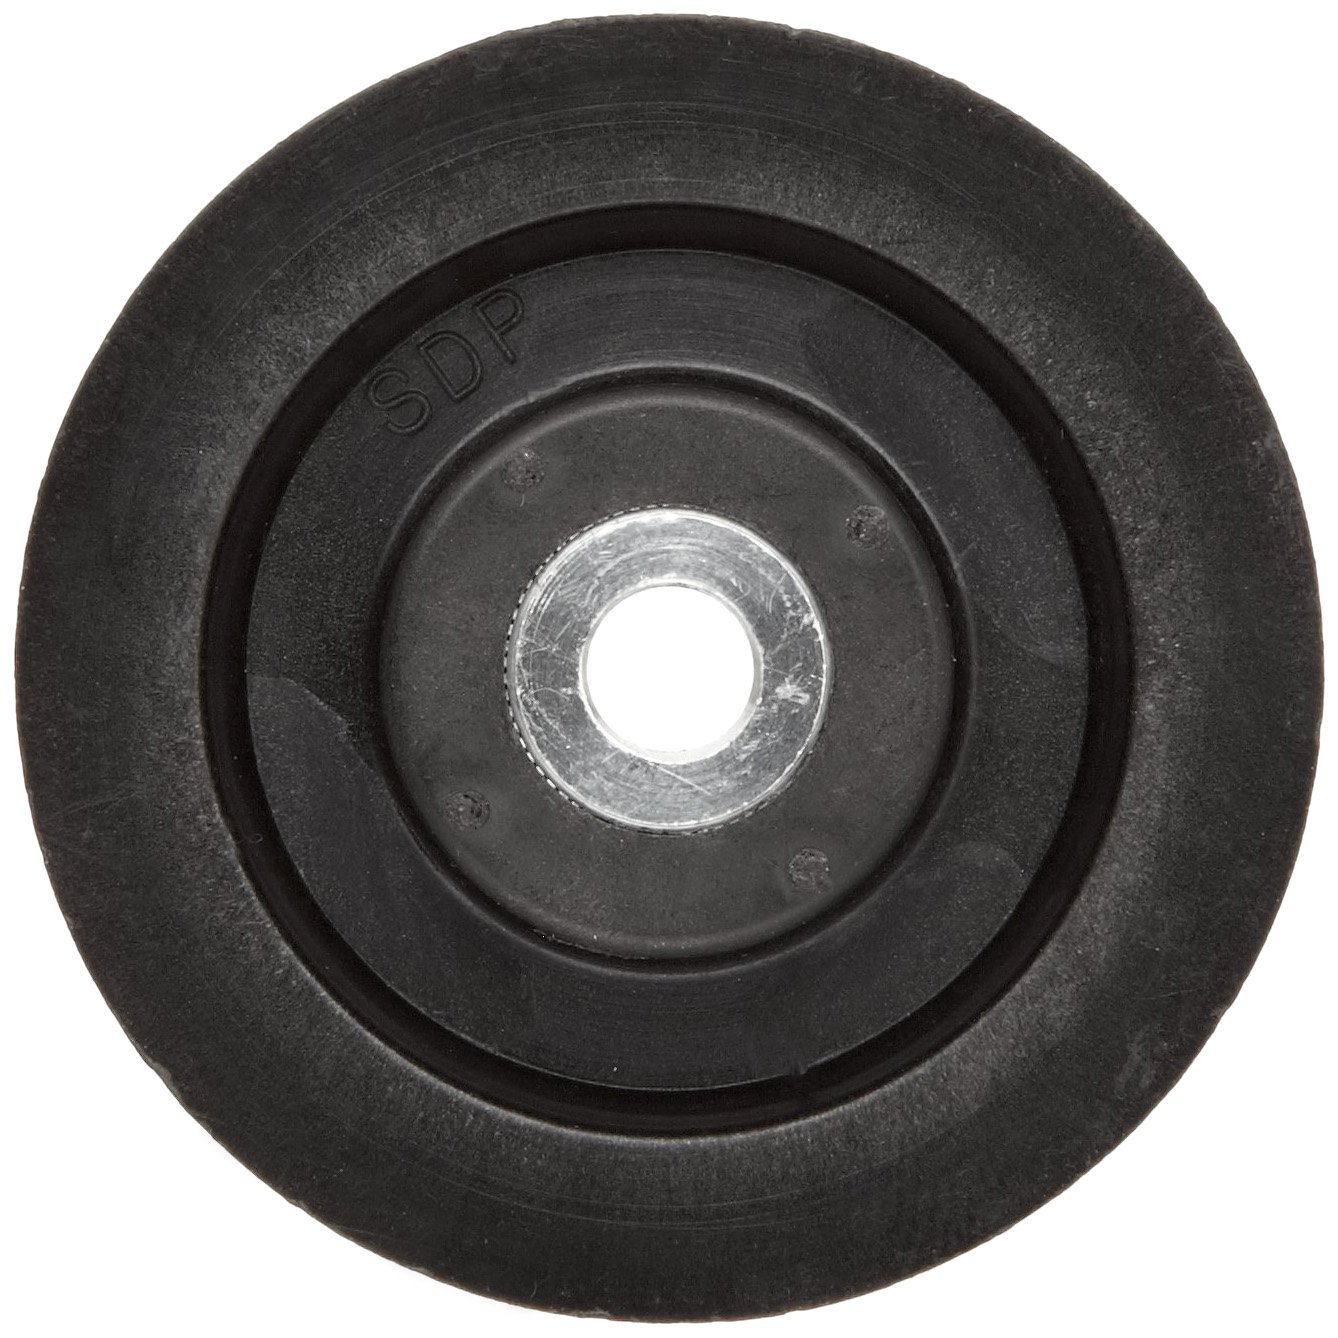 0.313 Bore Diameter Lexan Boston Gear PLB5028SF095//16 Timing Pulley for 9mm Wide Belts 0.813 Overall Length 28 Groves 1.709 Outside Diameter